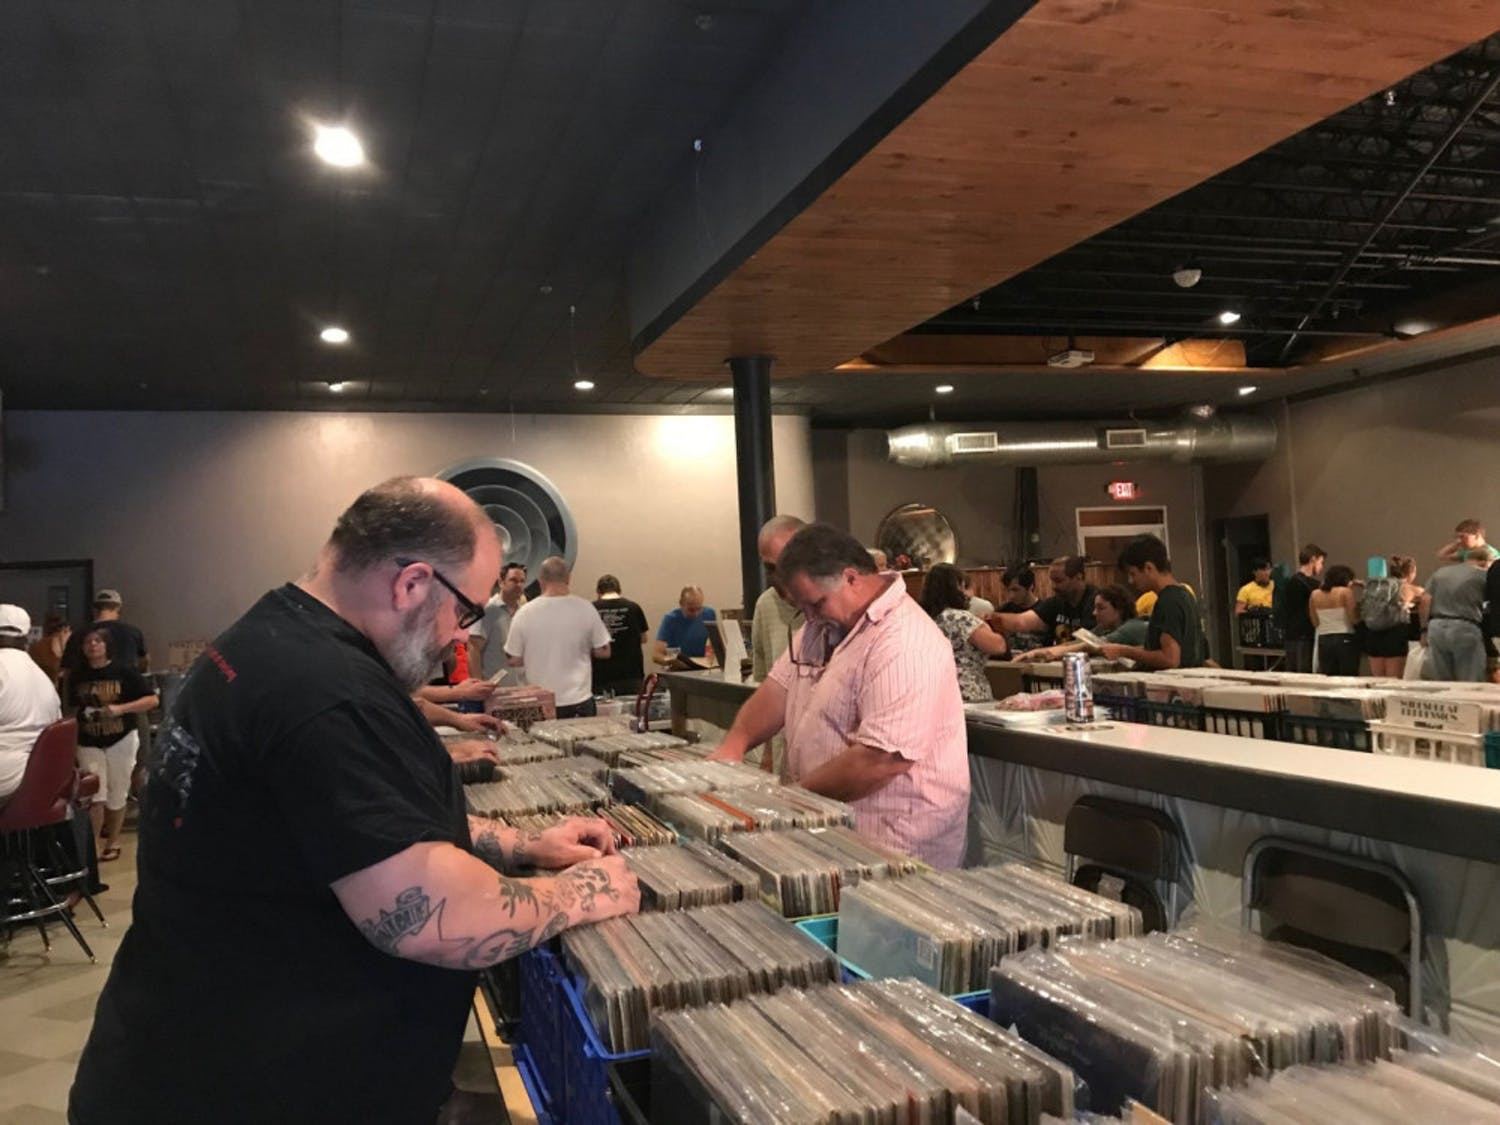 Music lovers of all ages gathered at The Wooly to sift through countless records for vinyl treasures.